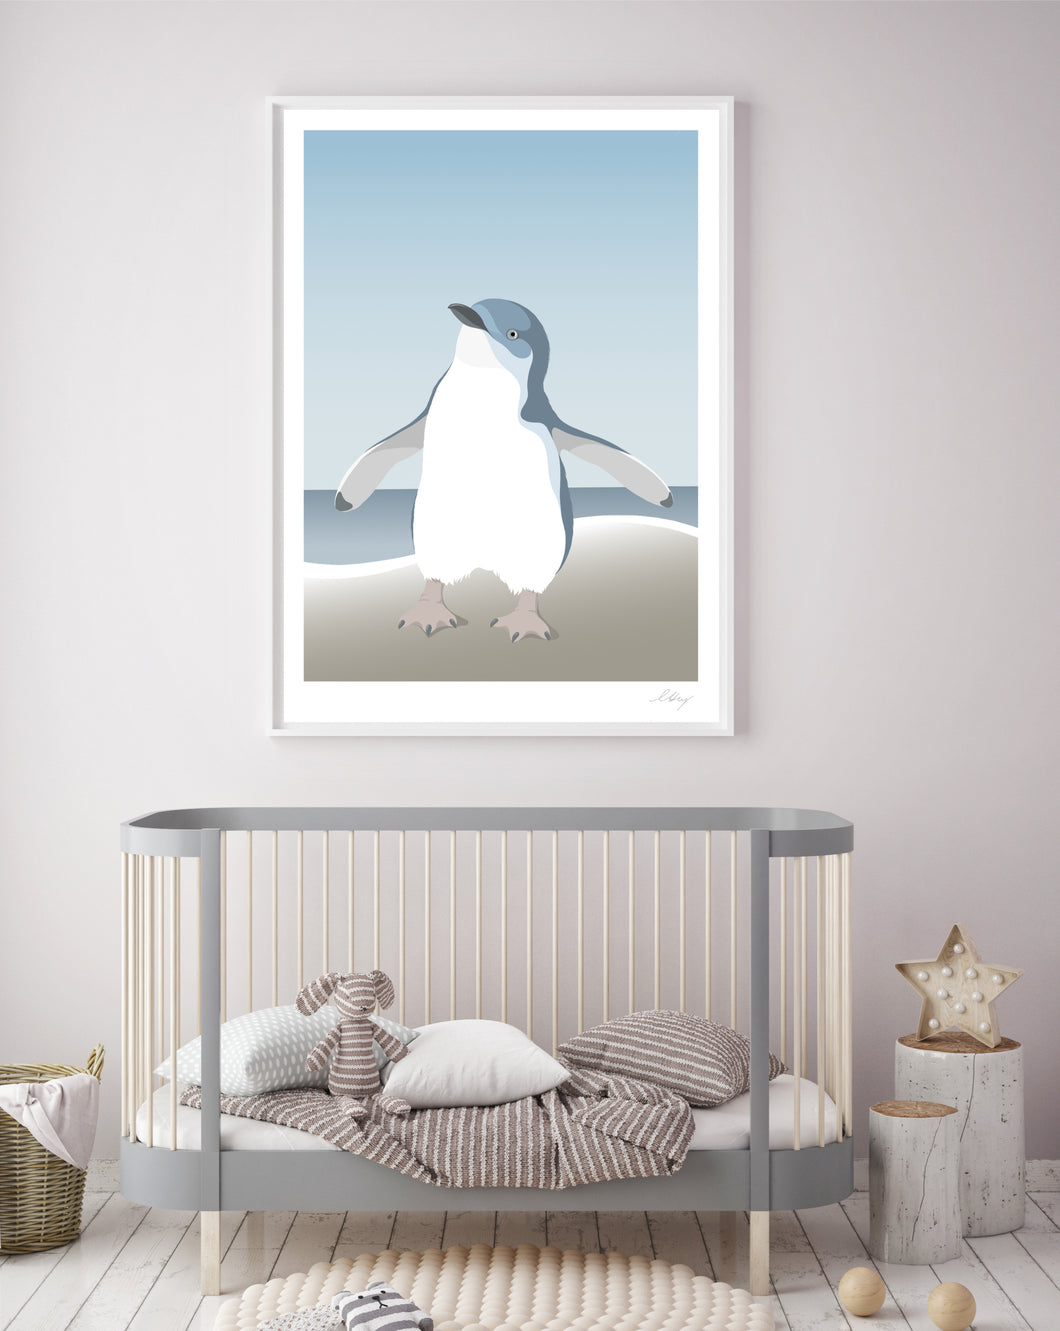 Hansby Design Blue Penguin Print Nursery